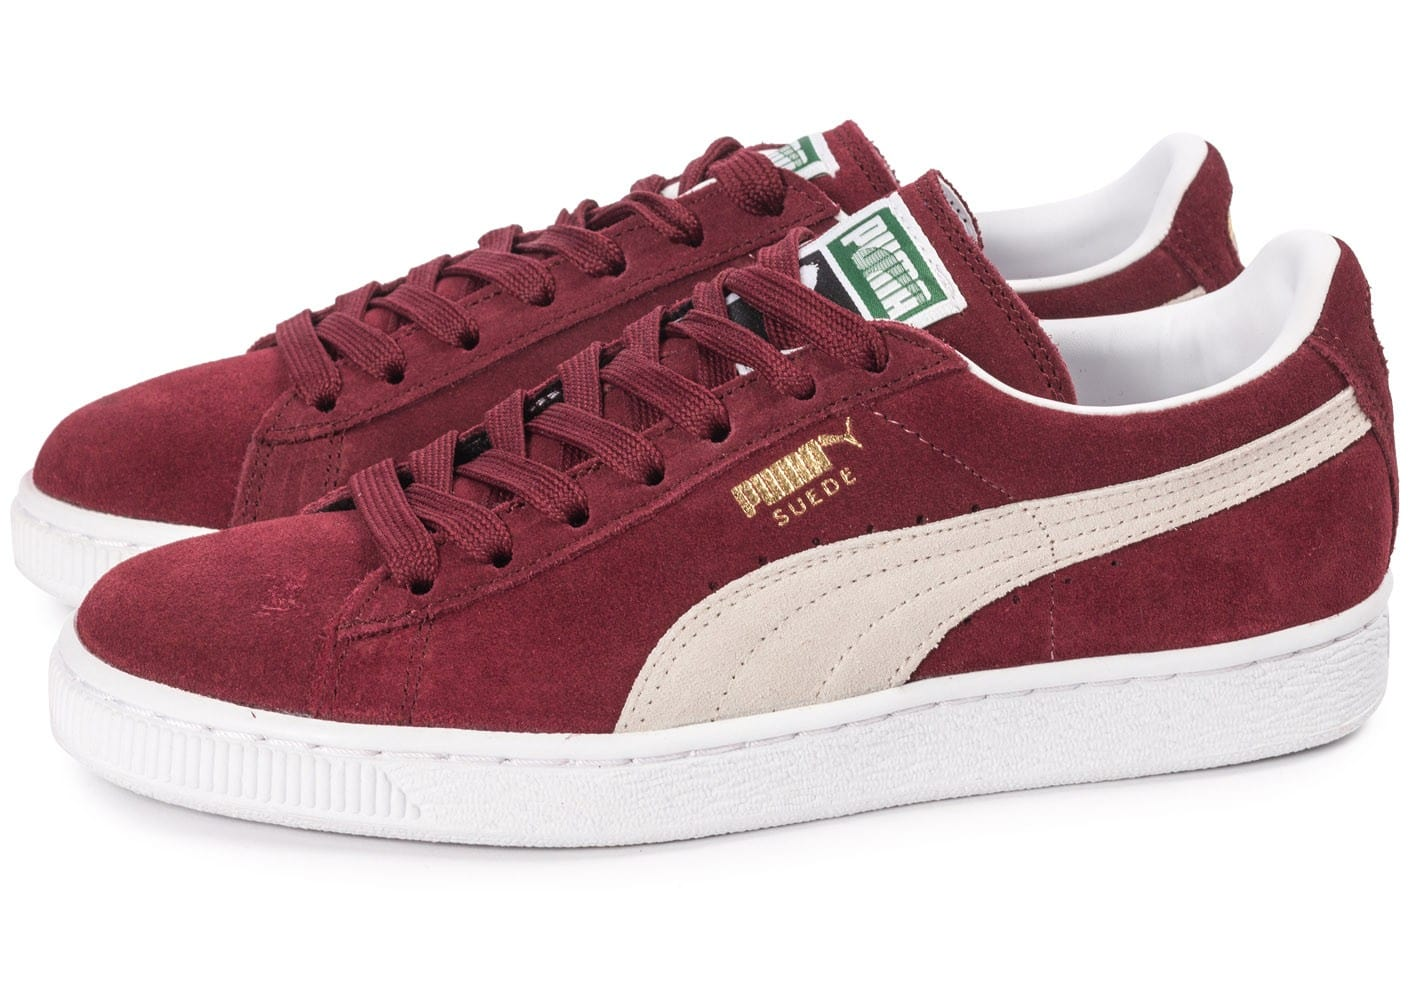 puma suede classic w bordeaux chaussures toutes les baskets sold es chausport. Black Bedroom Furniture Sets. Home Design Ideas